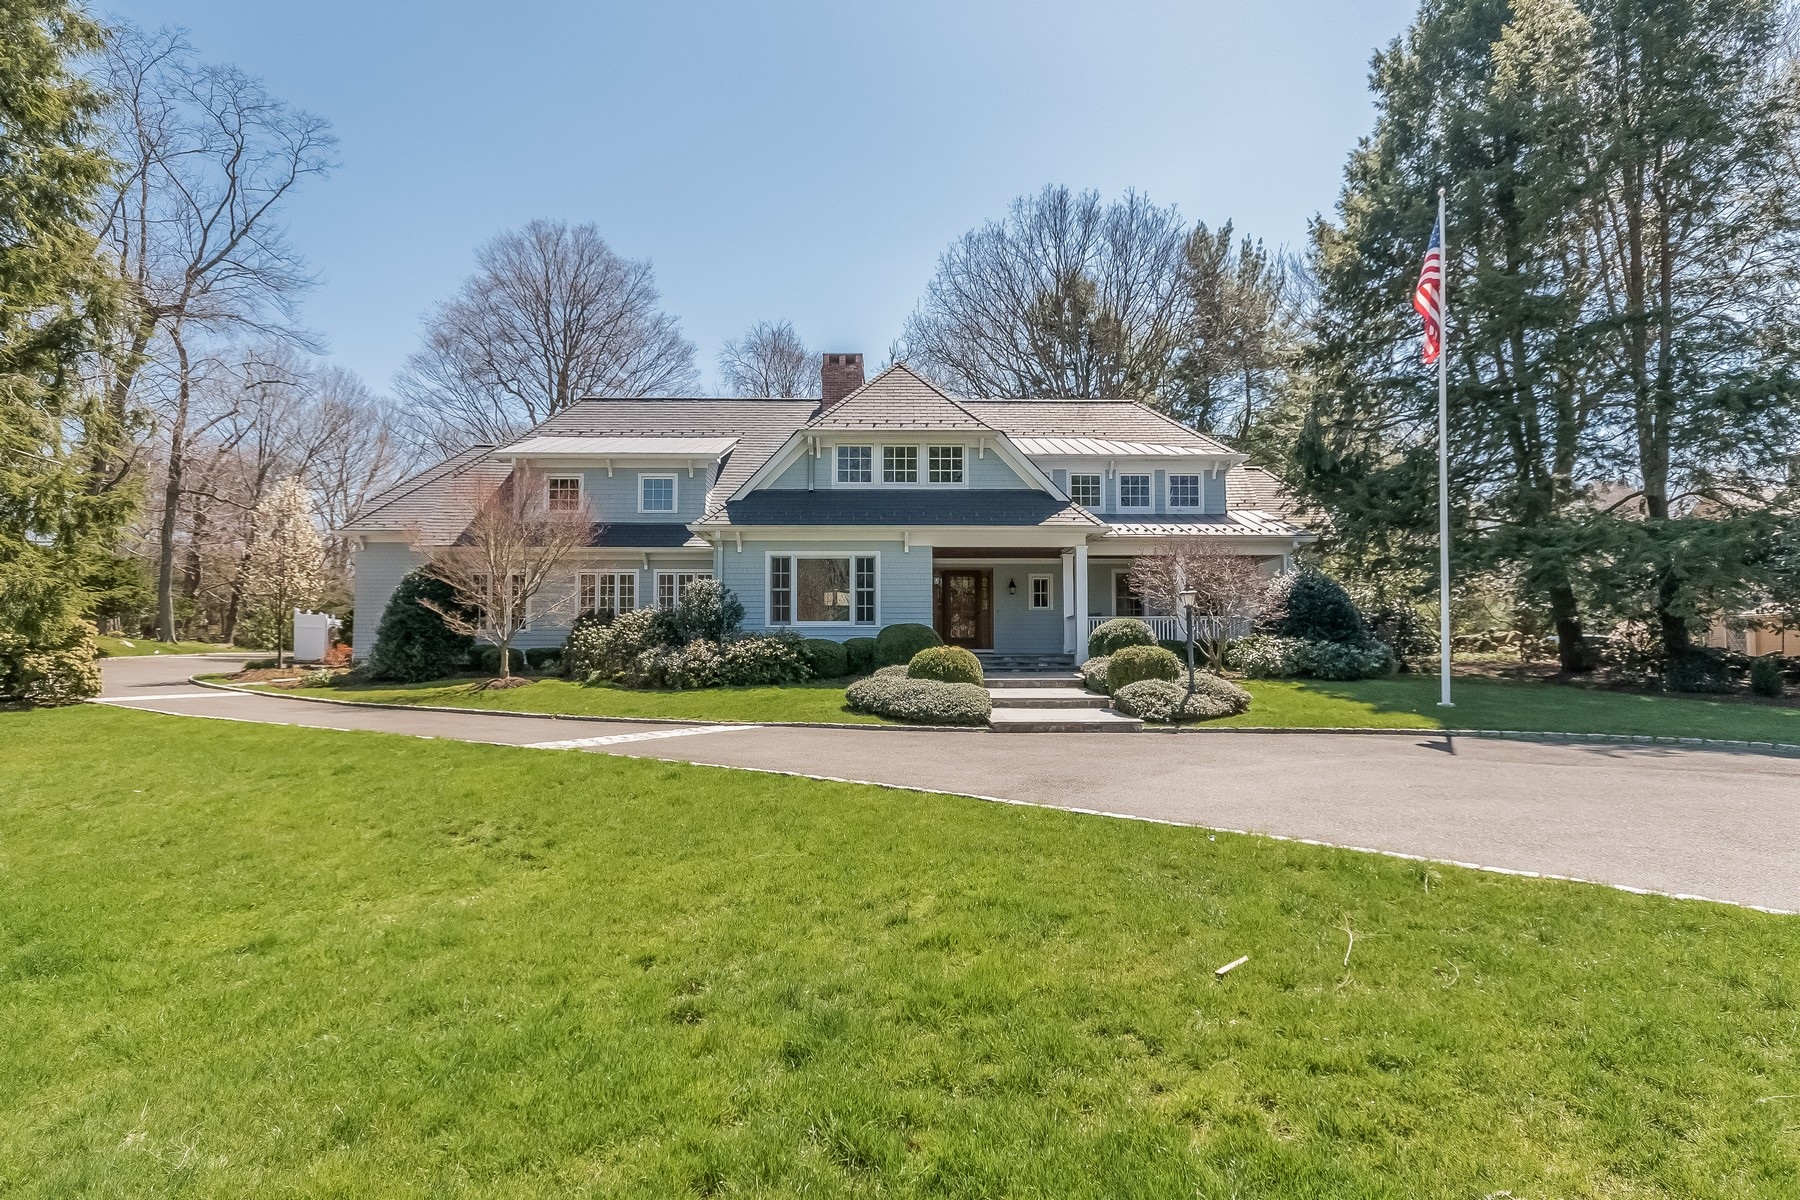 Single Family Home for Sale at WINTON PARK 225 Winton Road Fairfield, Connecticut, 06824 United States